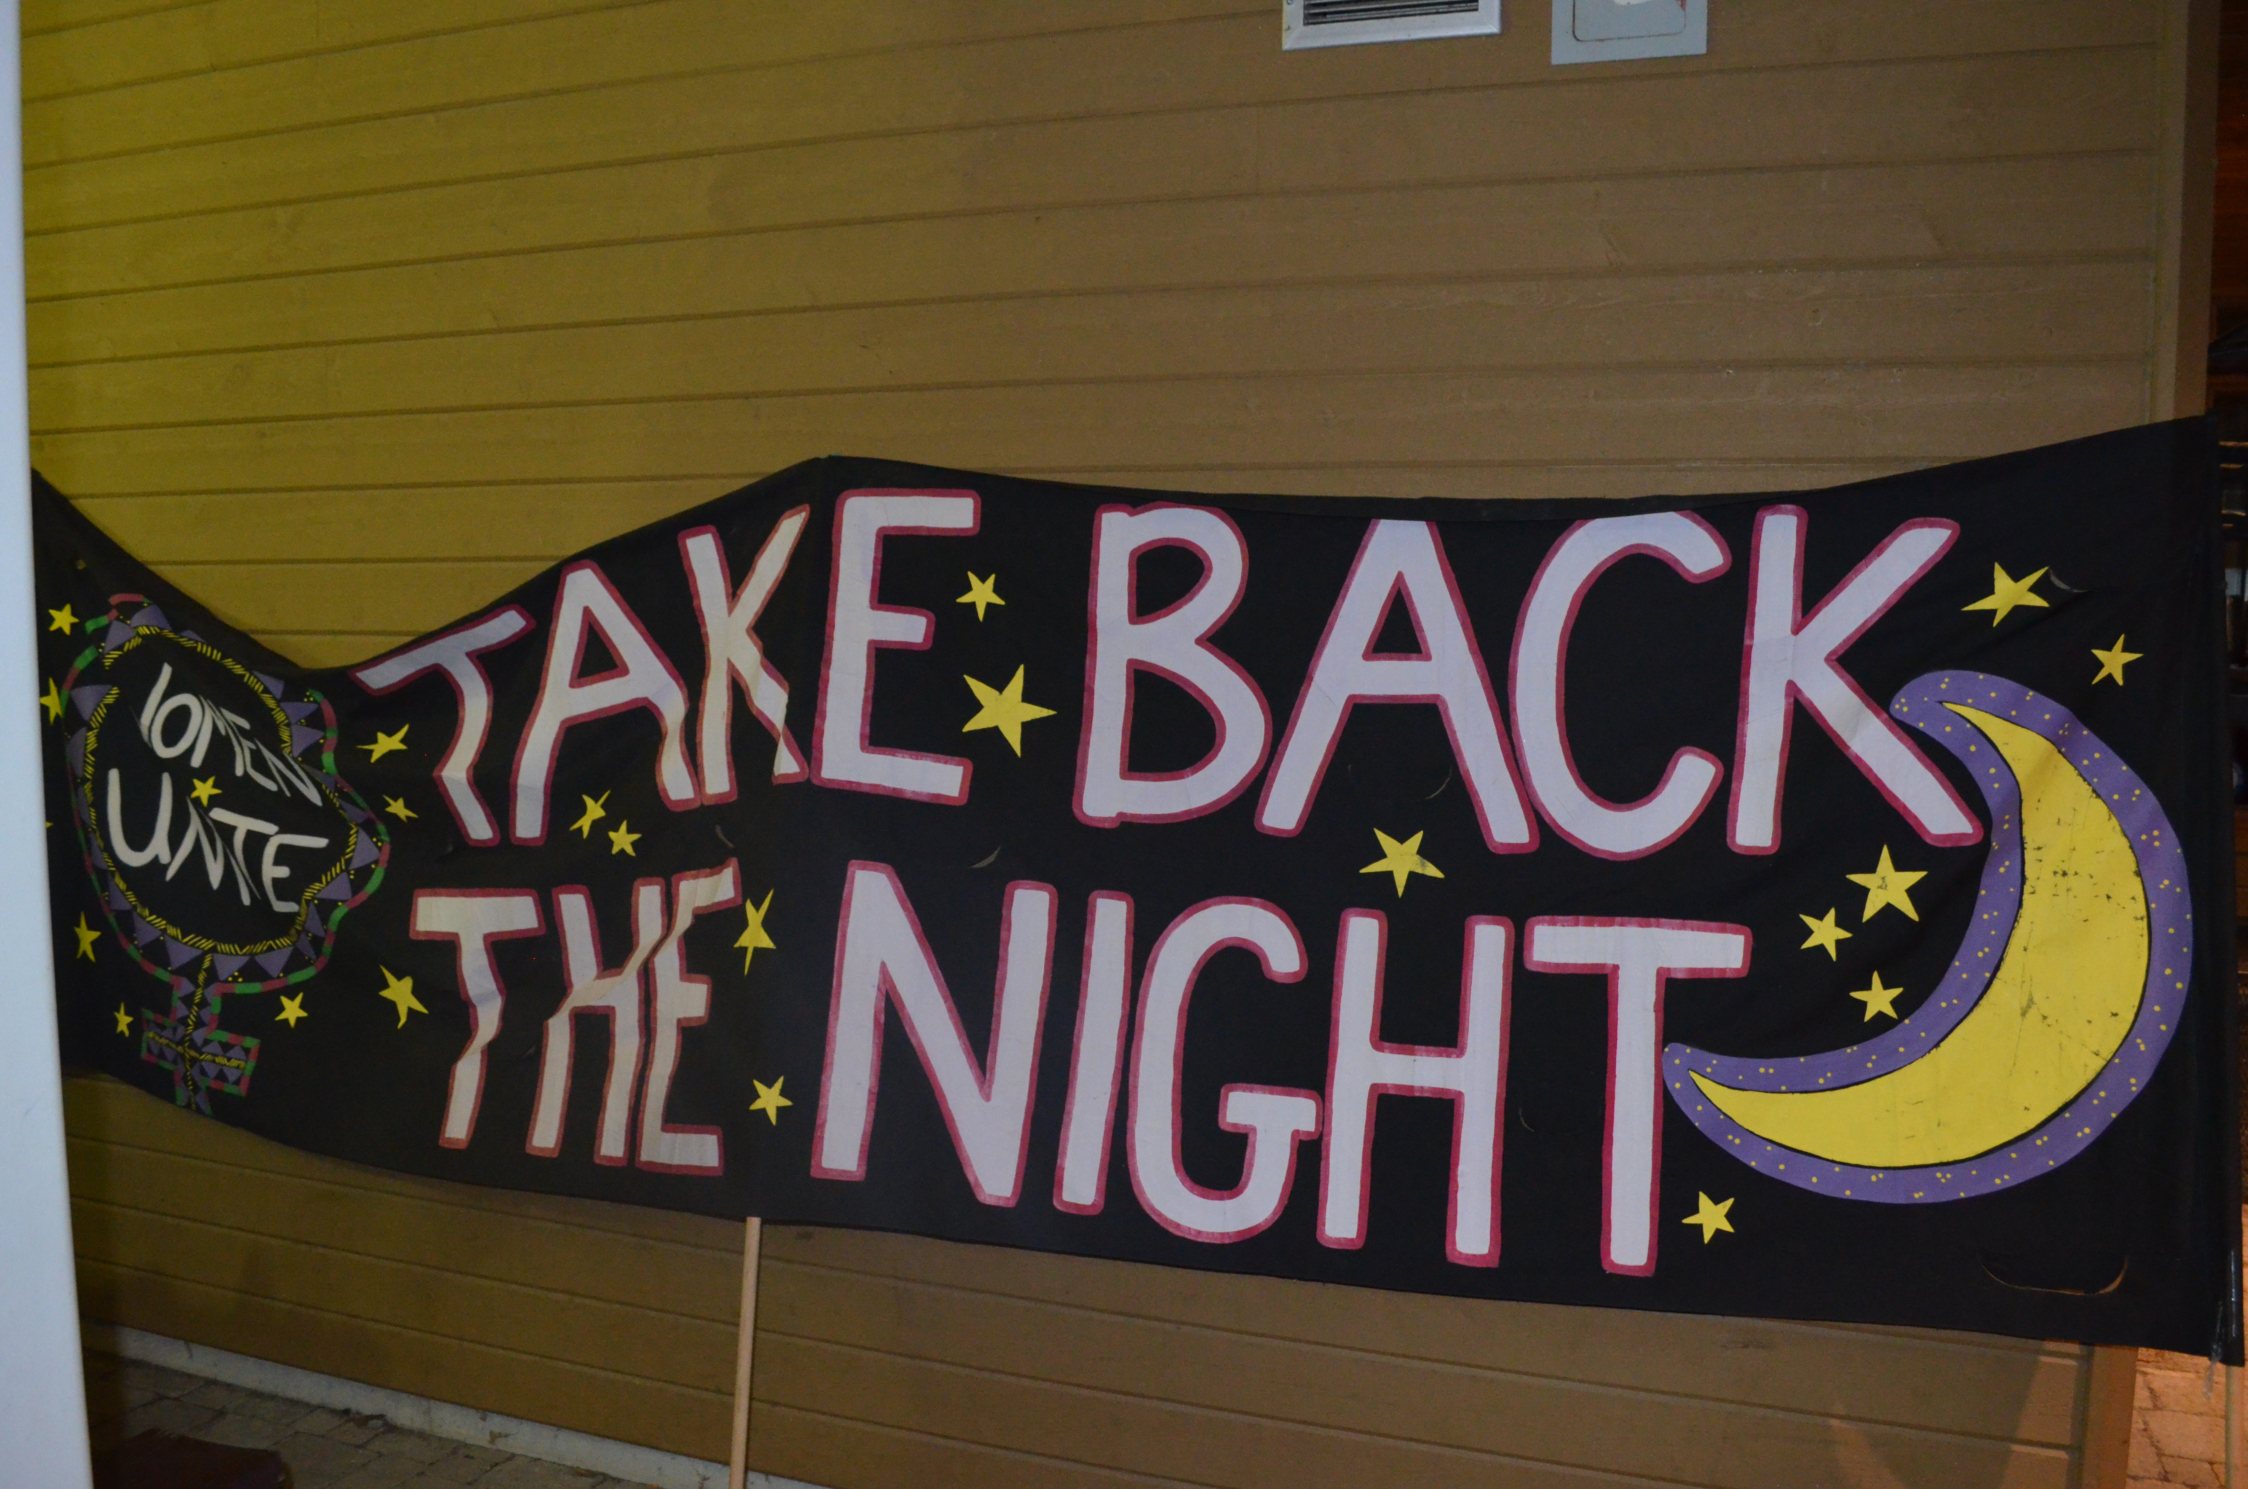 No More. Step Up. Speak Out. Take Back the Night.